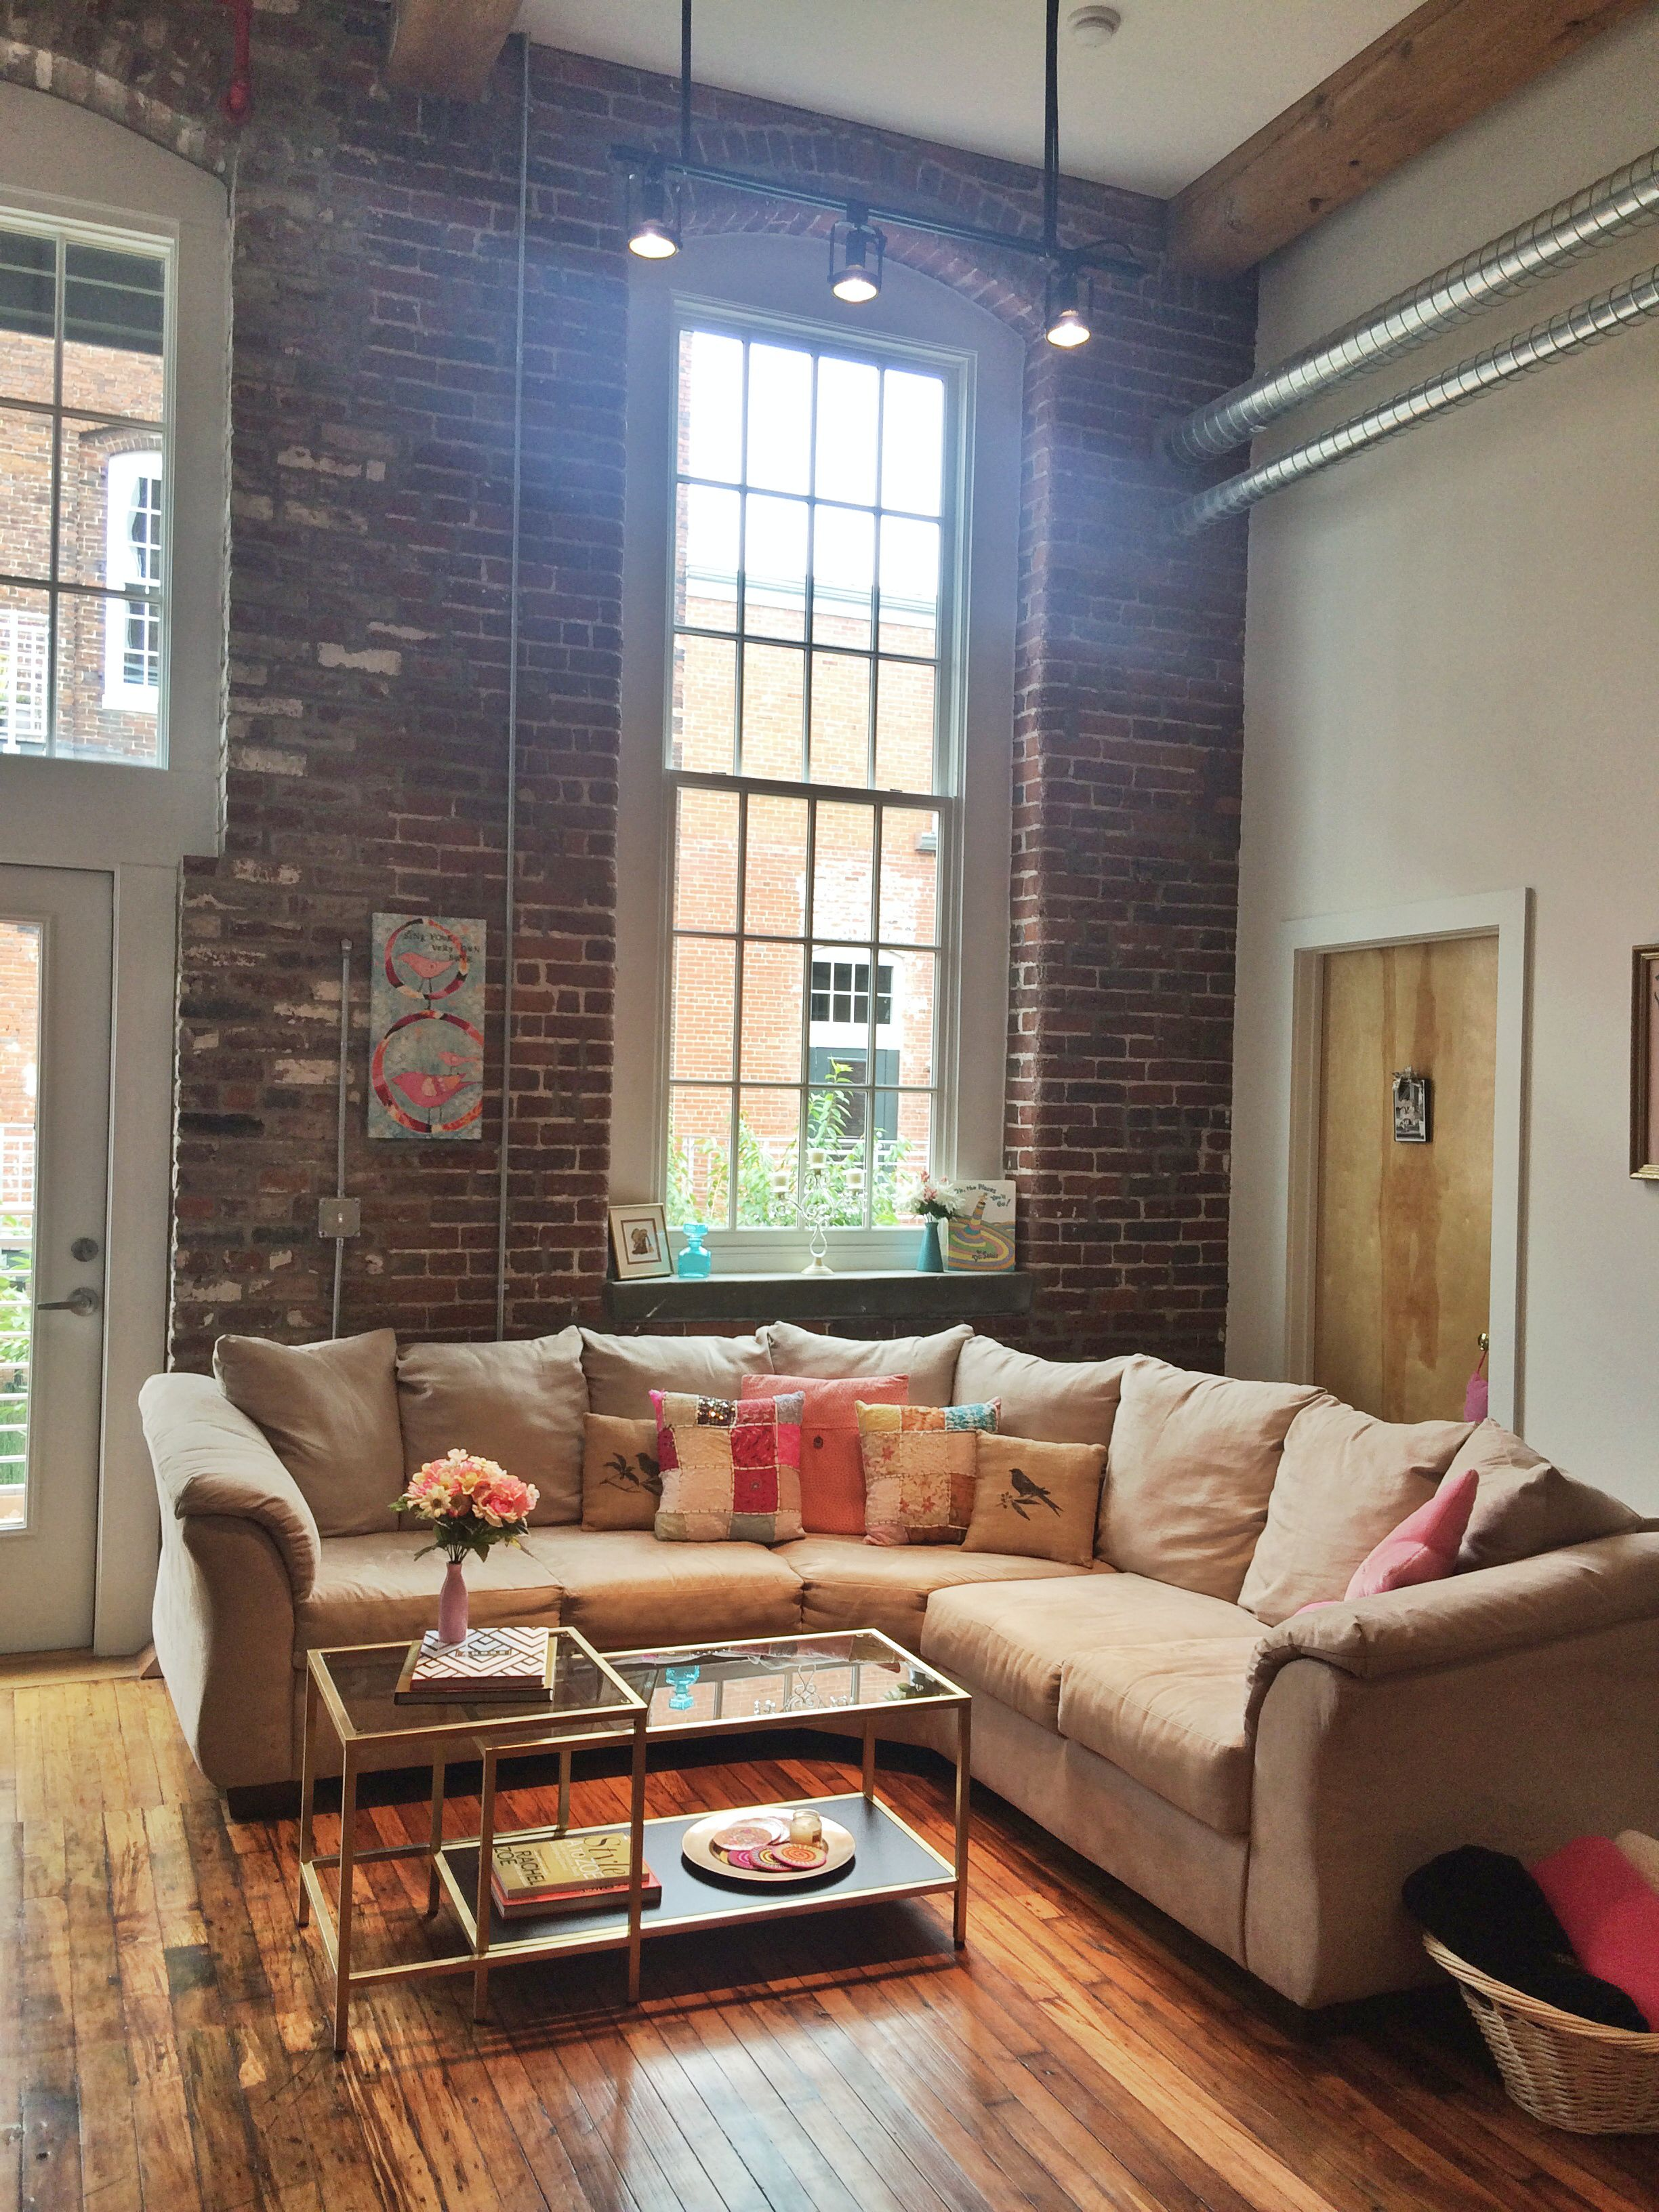 Exposed Brick, High Ceilings, And The Perfect Gold And Glass